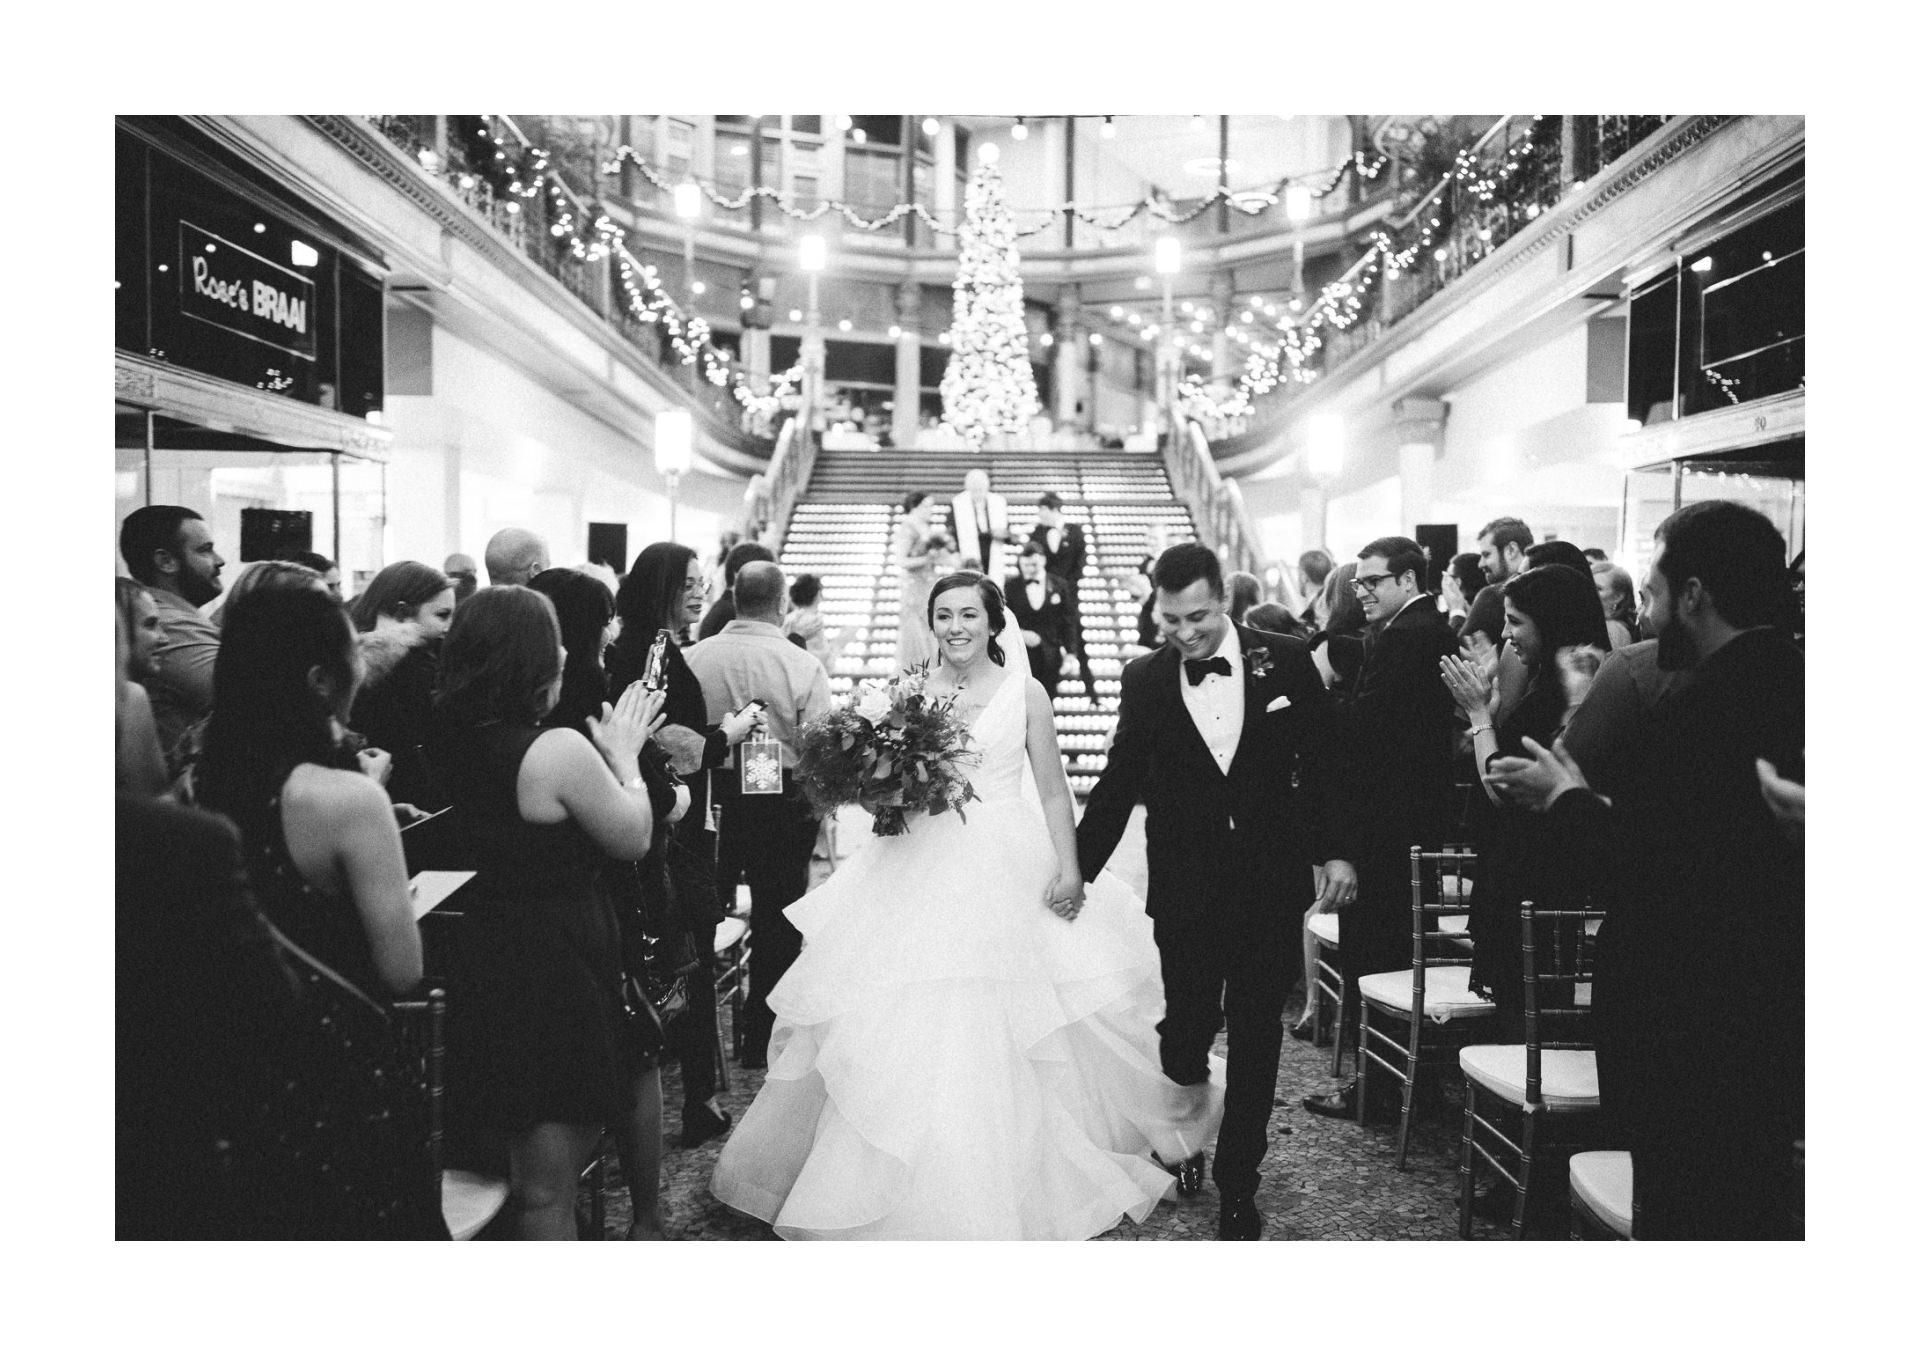 Hyatt Old Arcade Wedding Photographer in Cleveland 2 7.jpg